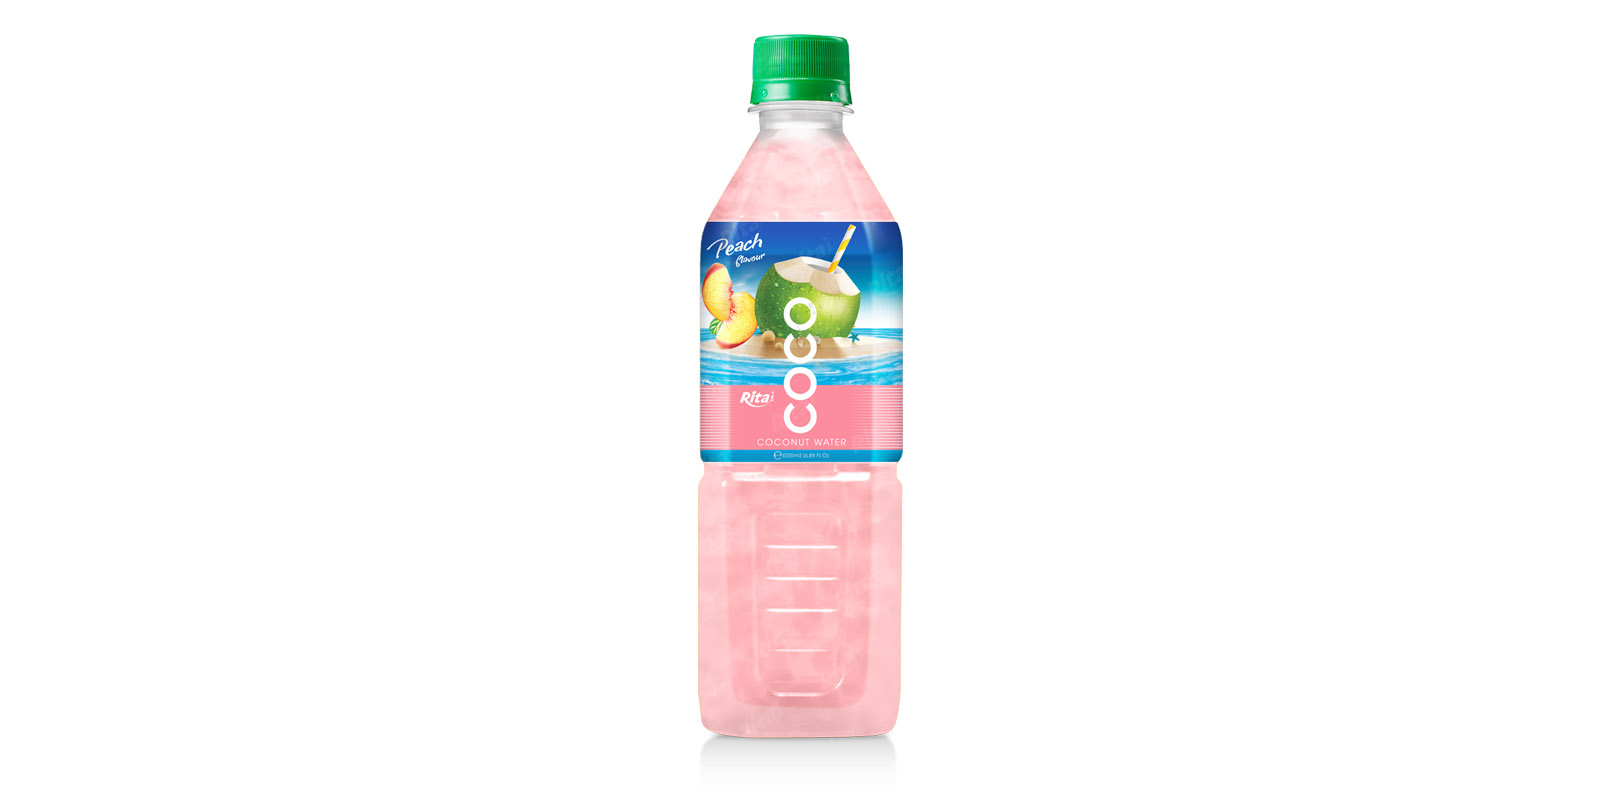 Coconut water with peach flavor  500ml Pet bottle